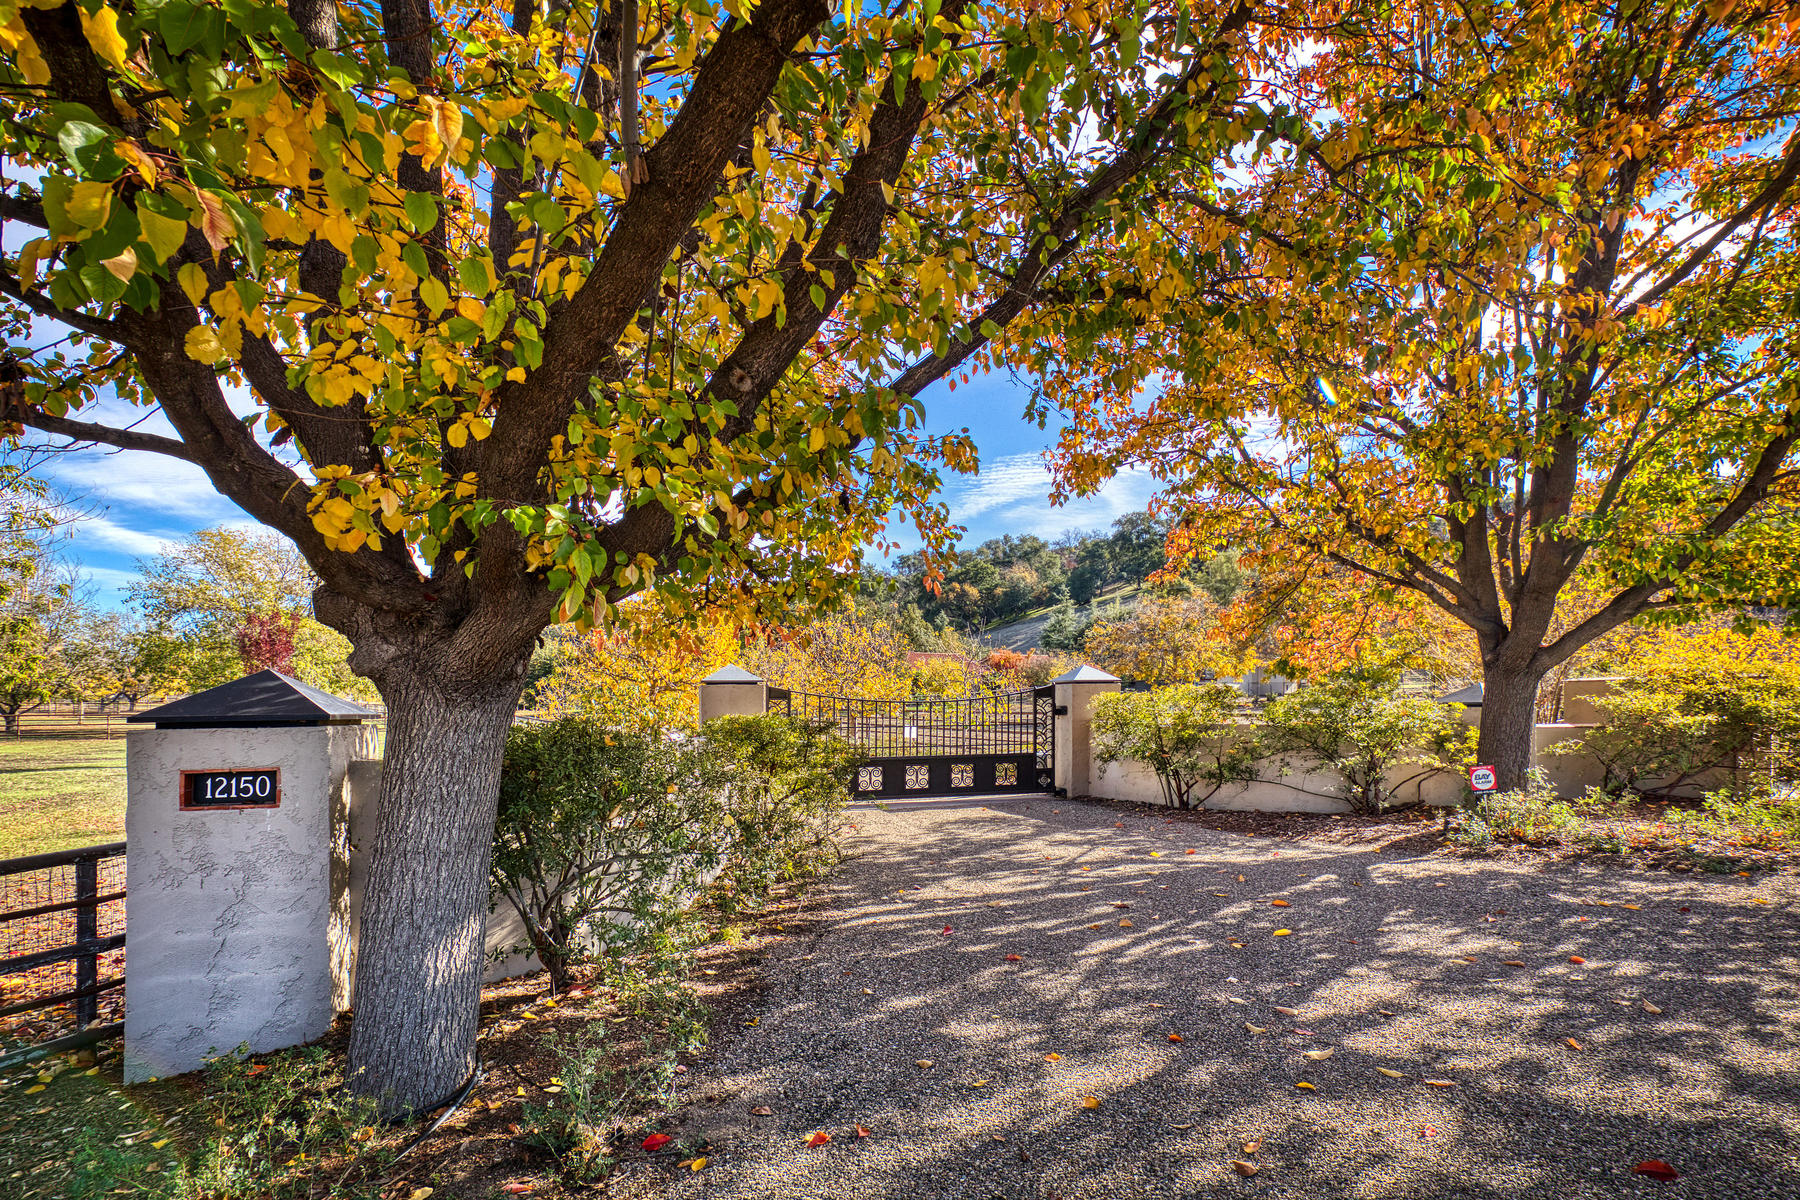 Farm / Ranch / Plantation for Sale at 20+ Acre Ranch 12150 Mountain Lion Road Ojai, California 93023 United States